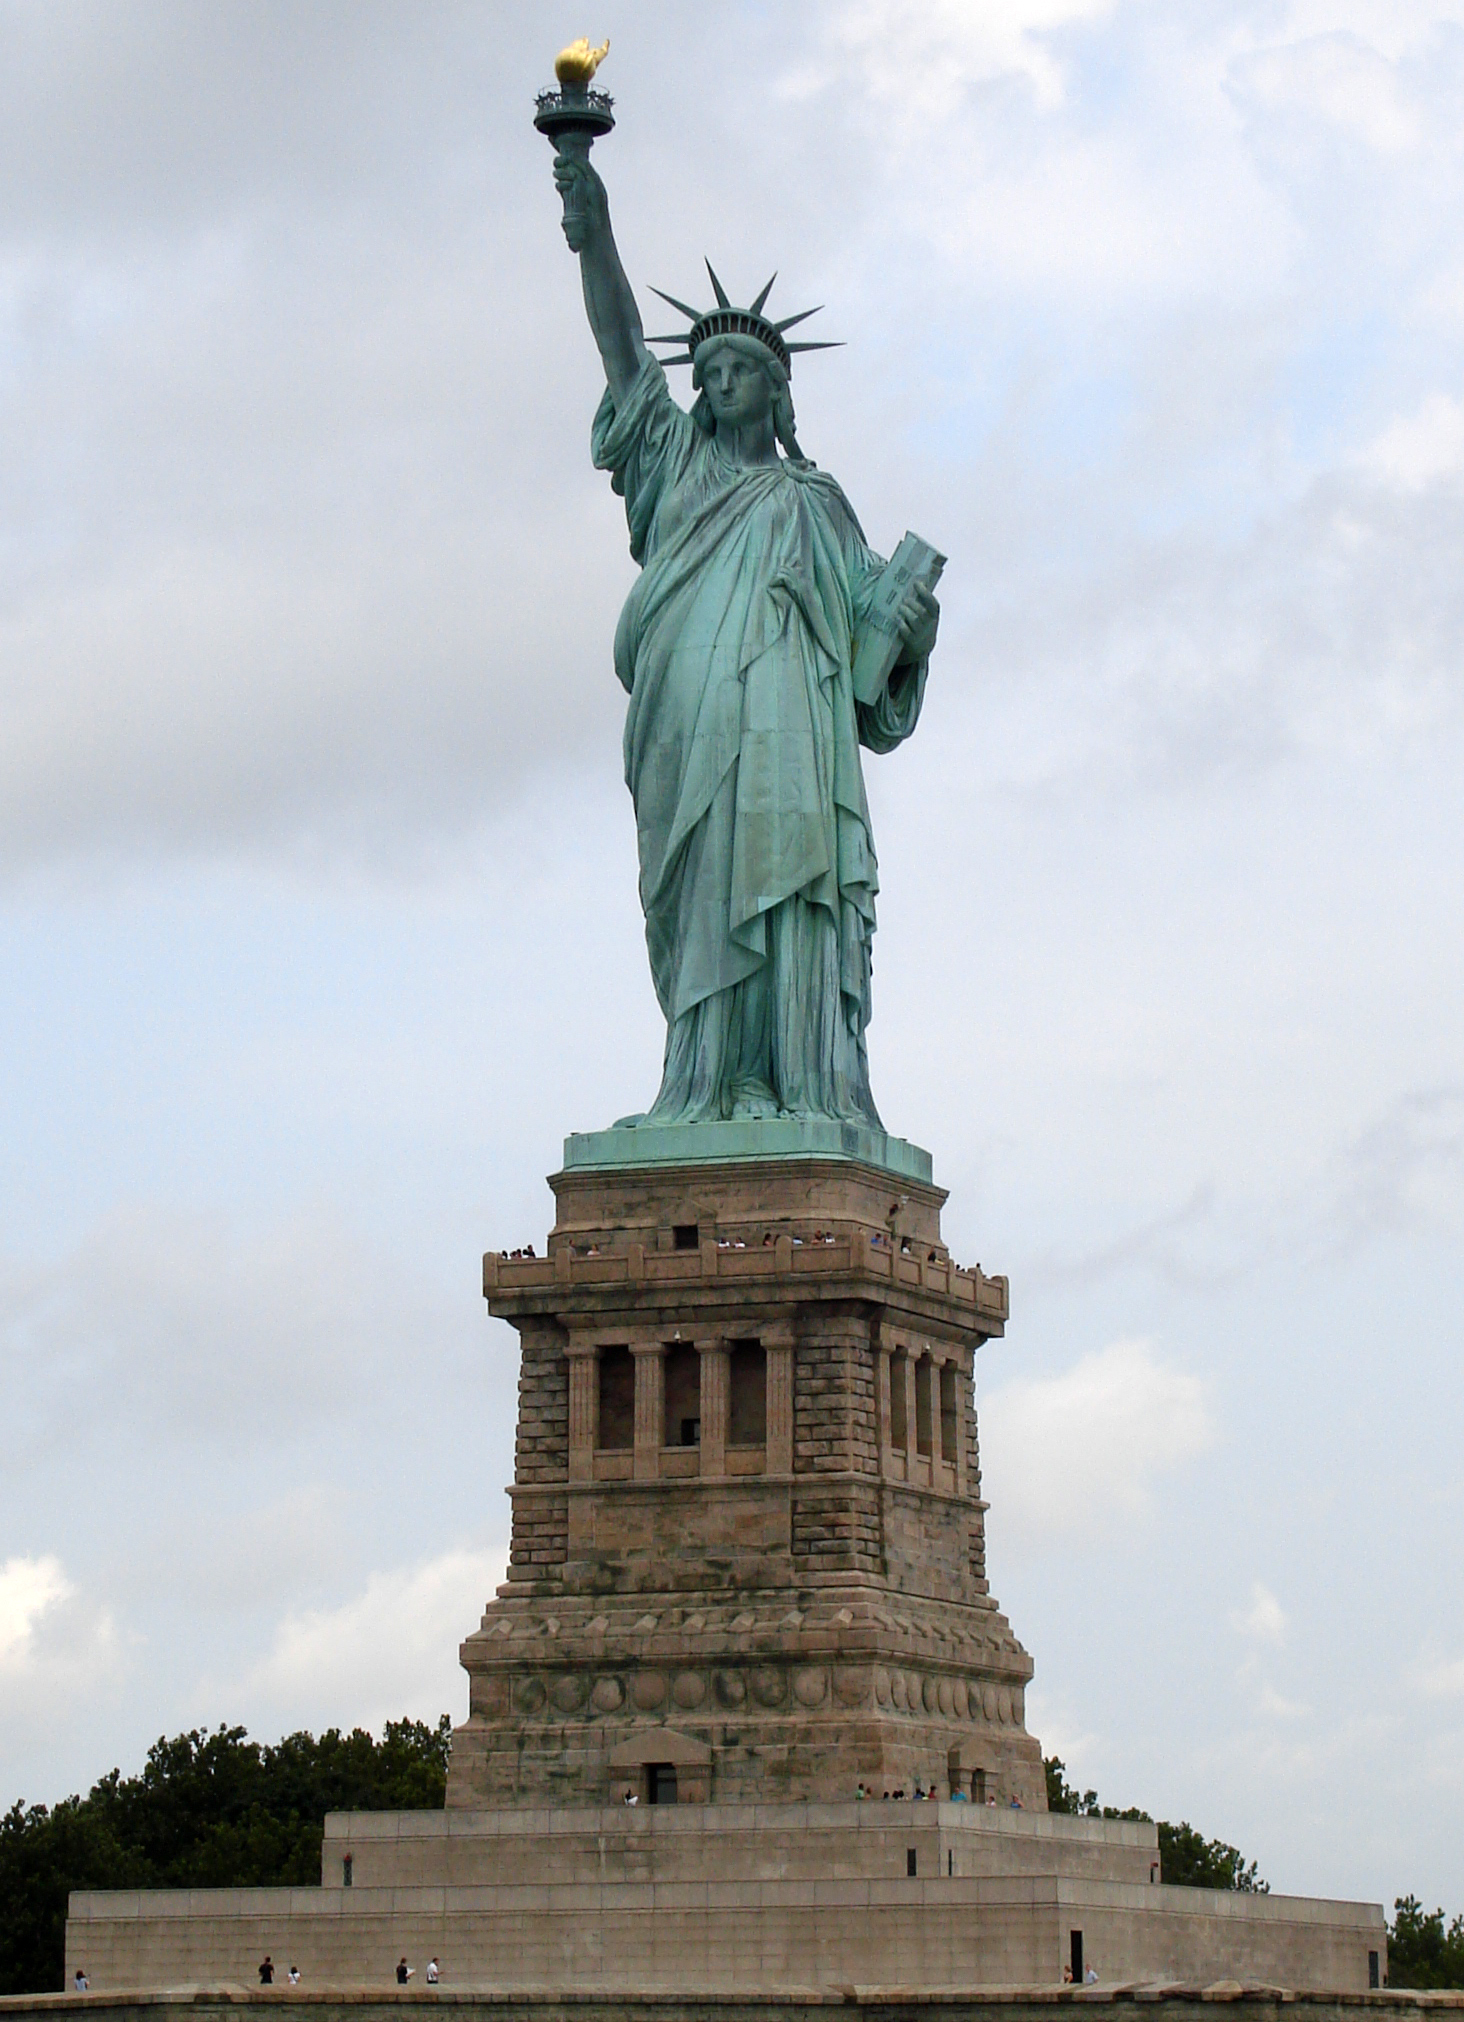 Statue of Liberty by Elcobbobla on Wikimedia